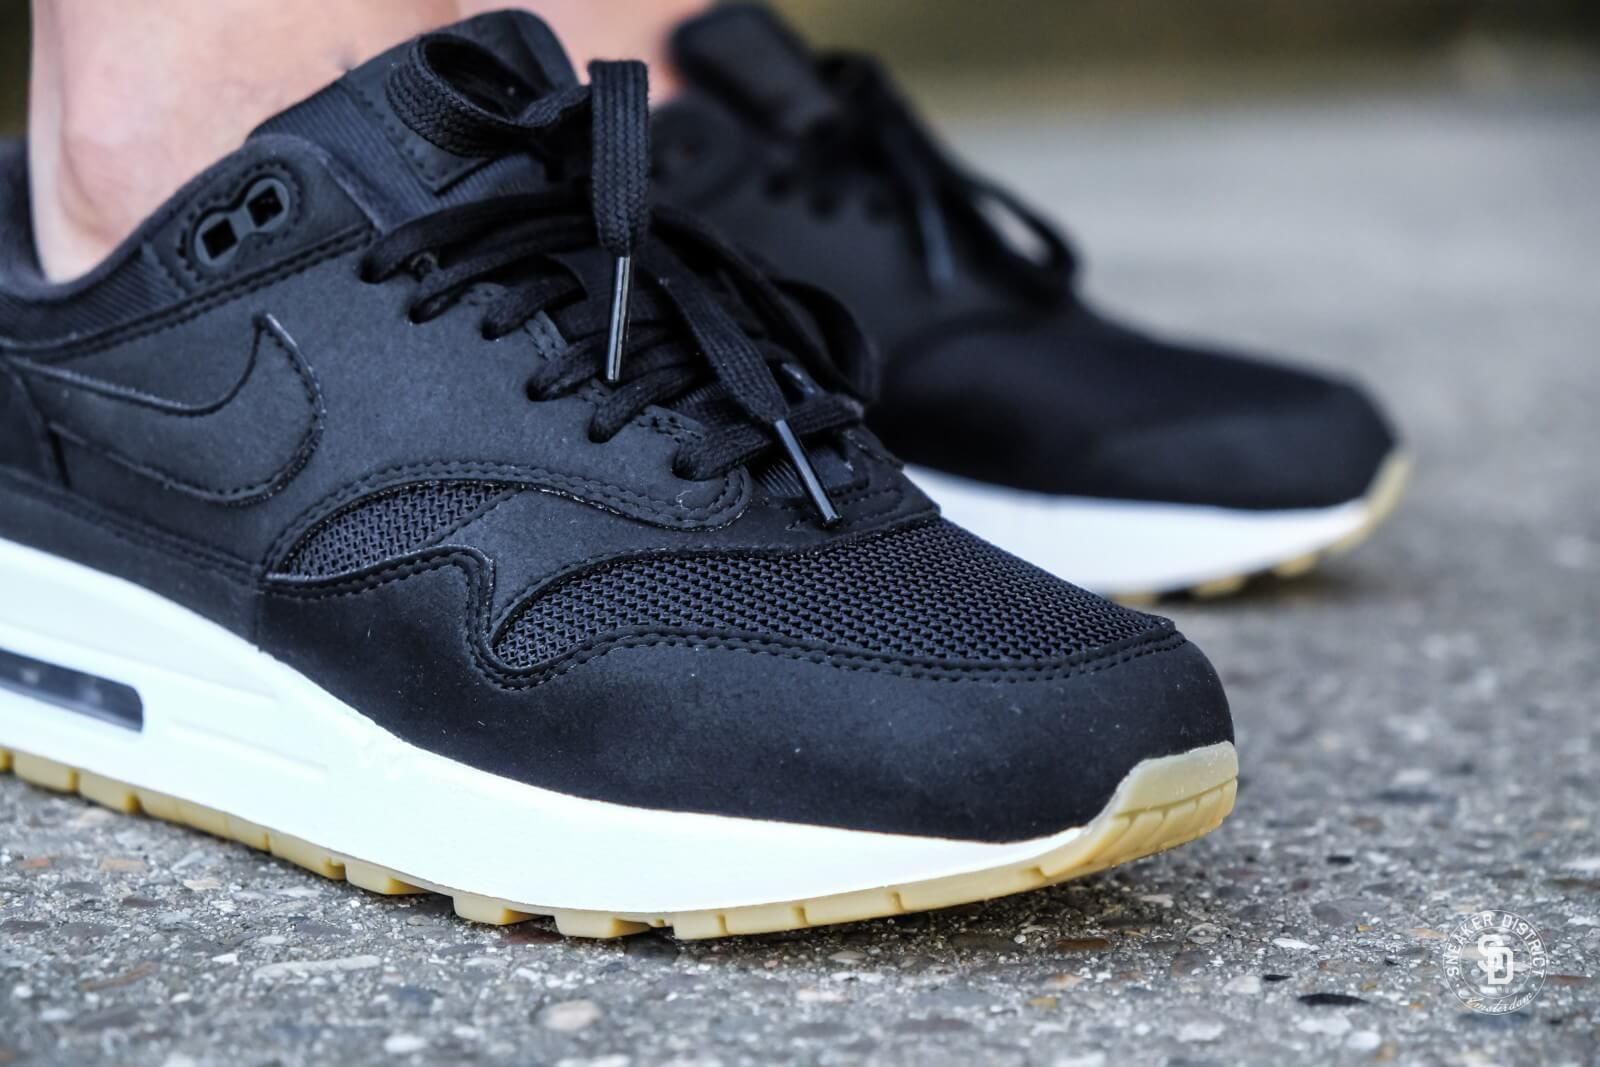 Nike Women's Air Max 1 Black/Black-Gum Light Brown